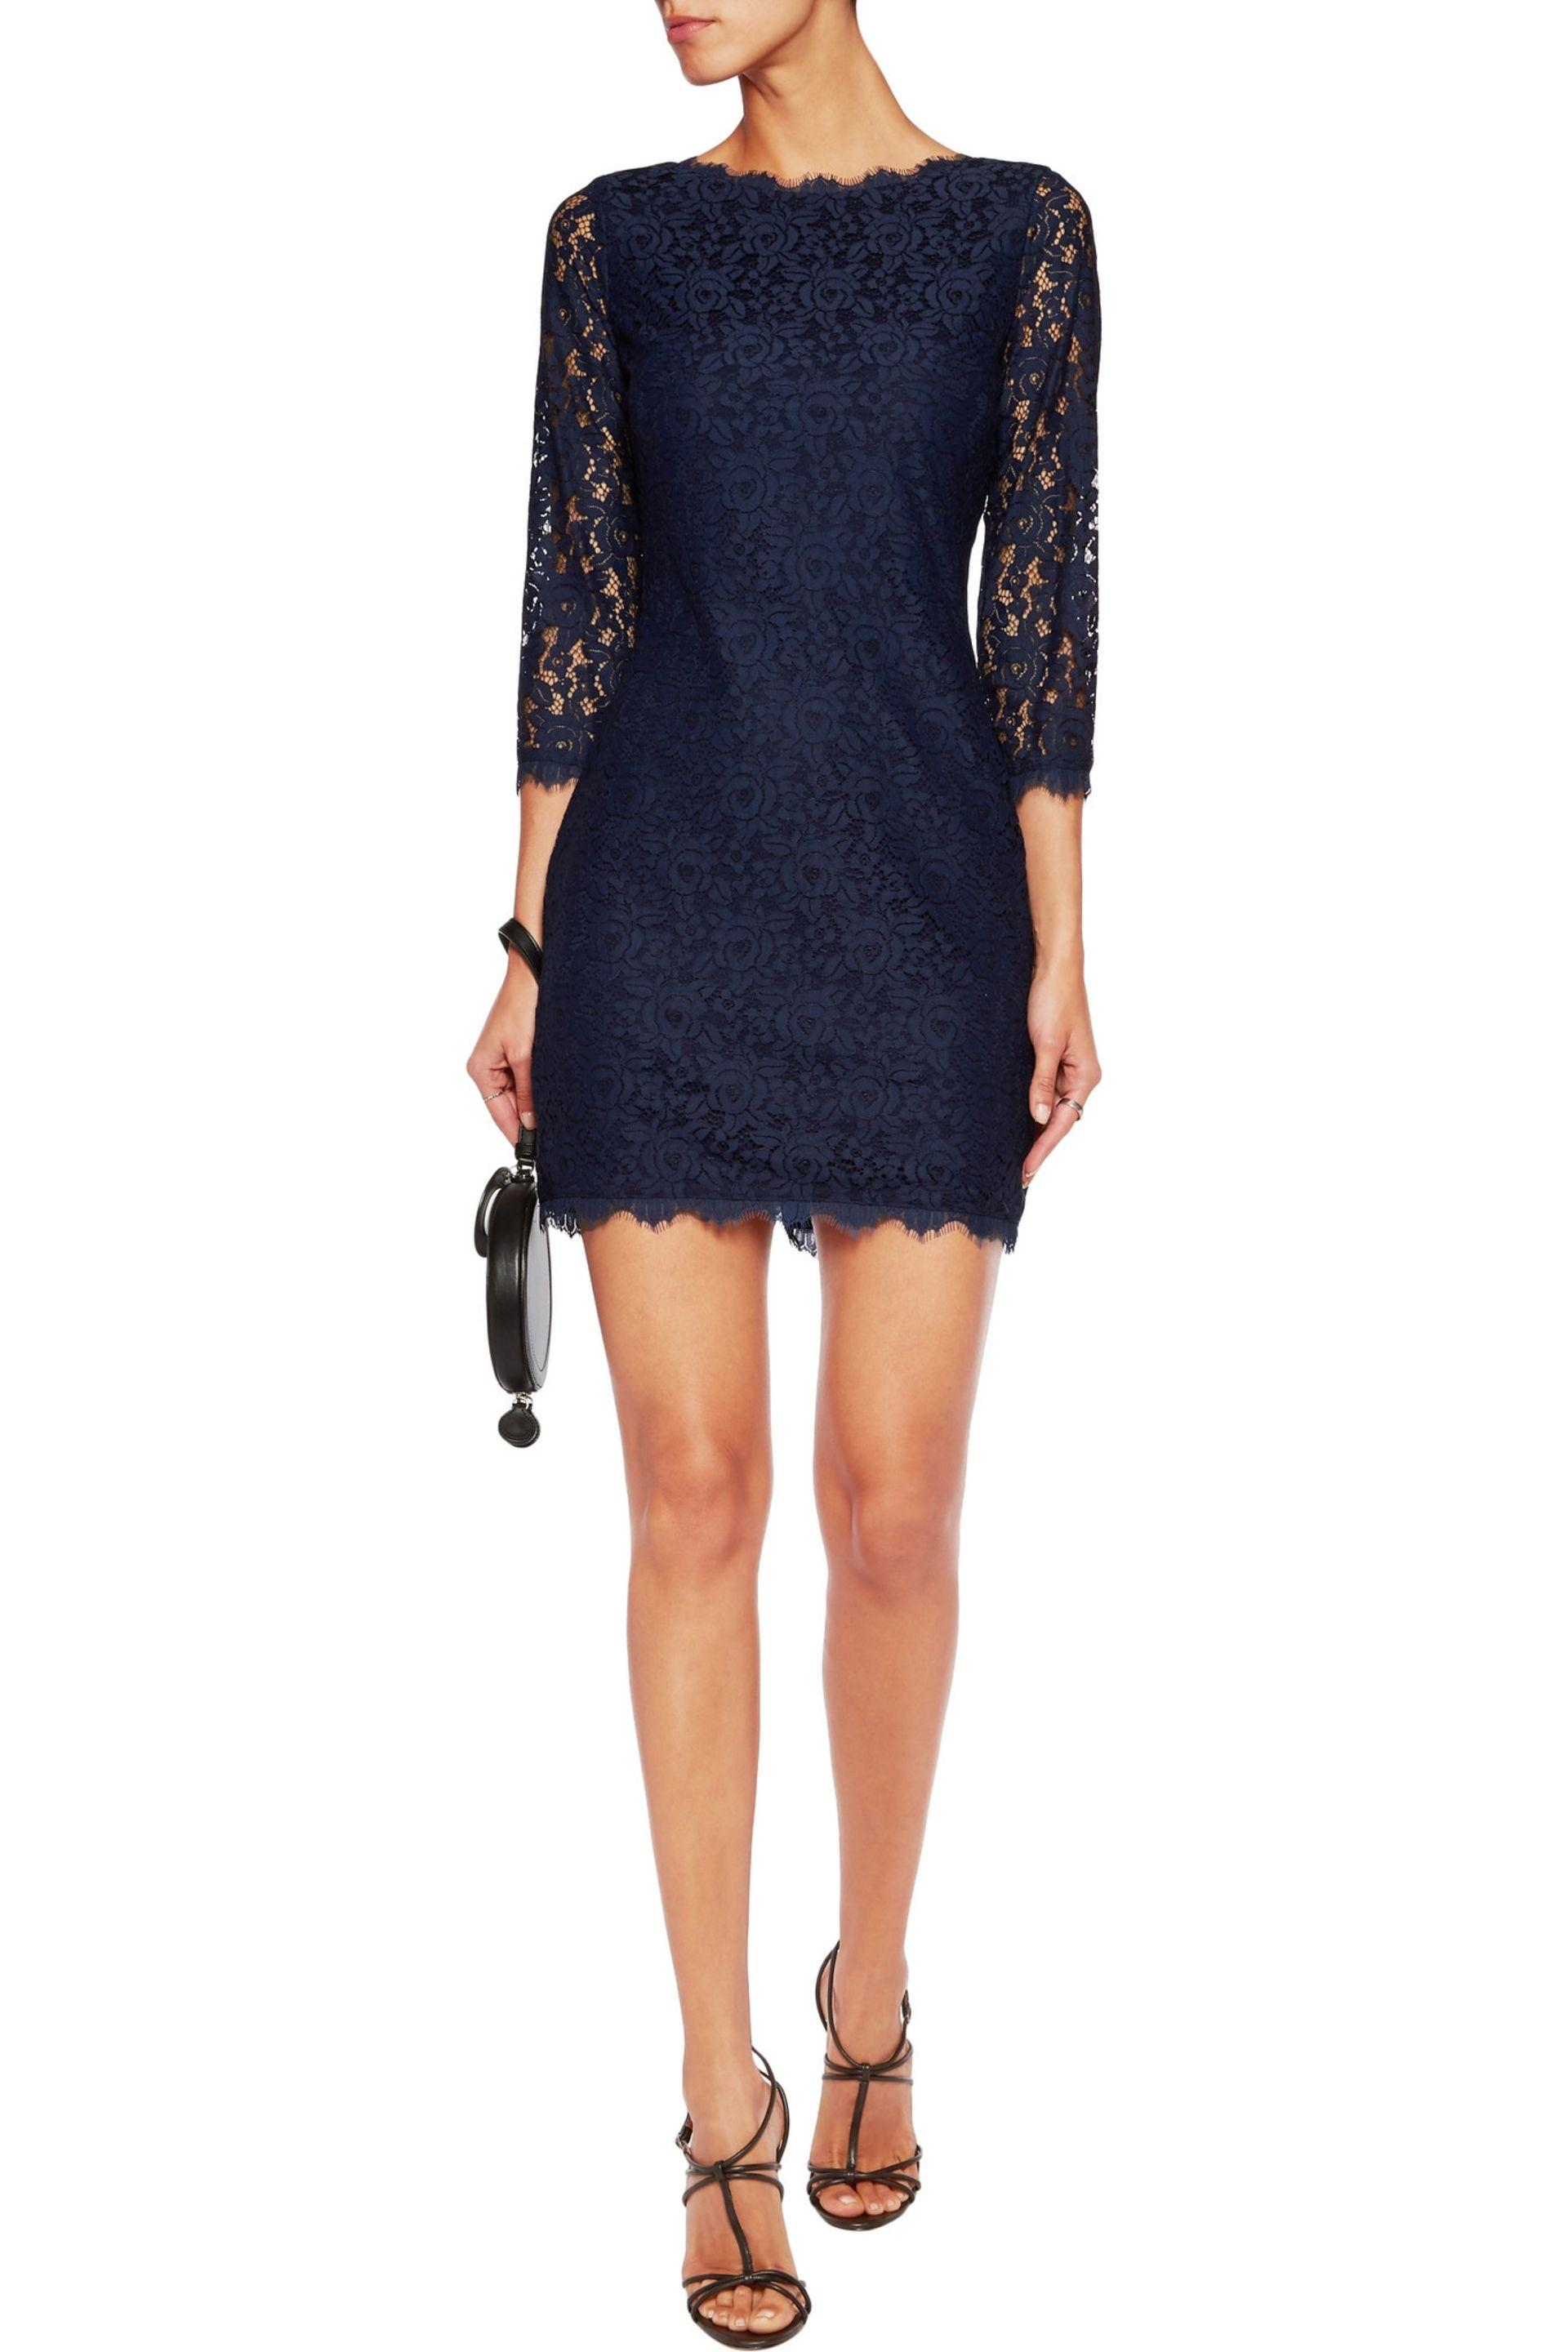 a8113b2cc9930 Diane von Furstenberg - Woman Colleen Corded Lace Mini Dress Midnight Blue  - Lyst. View fullscreen